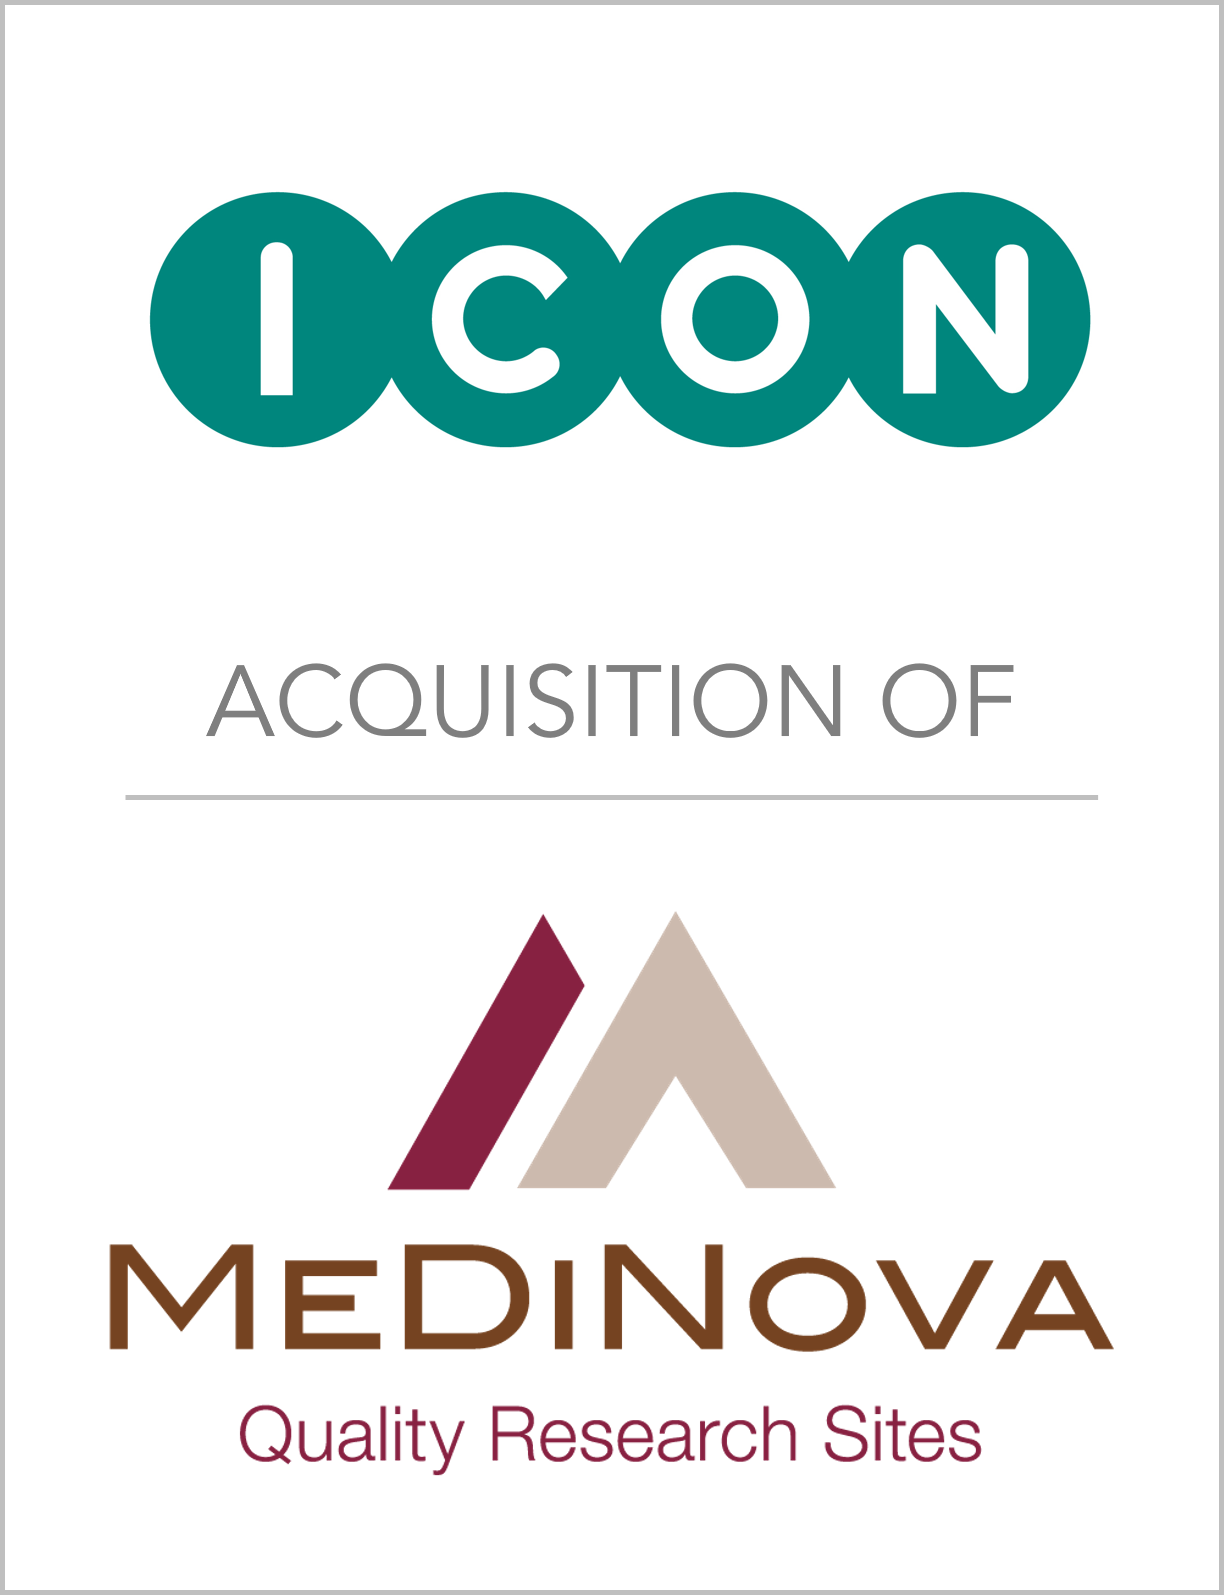 ICON_AcquisitionOf_MeDiNovaResearch - To